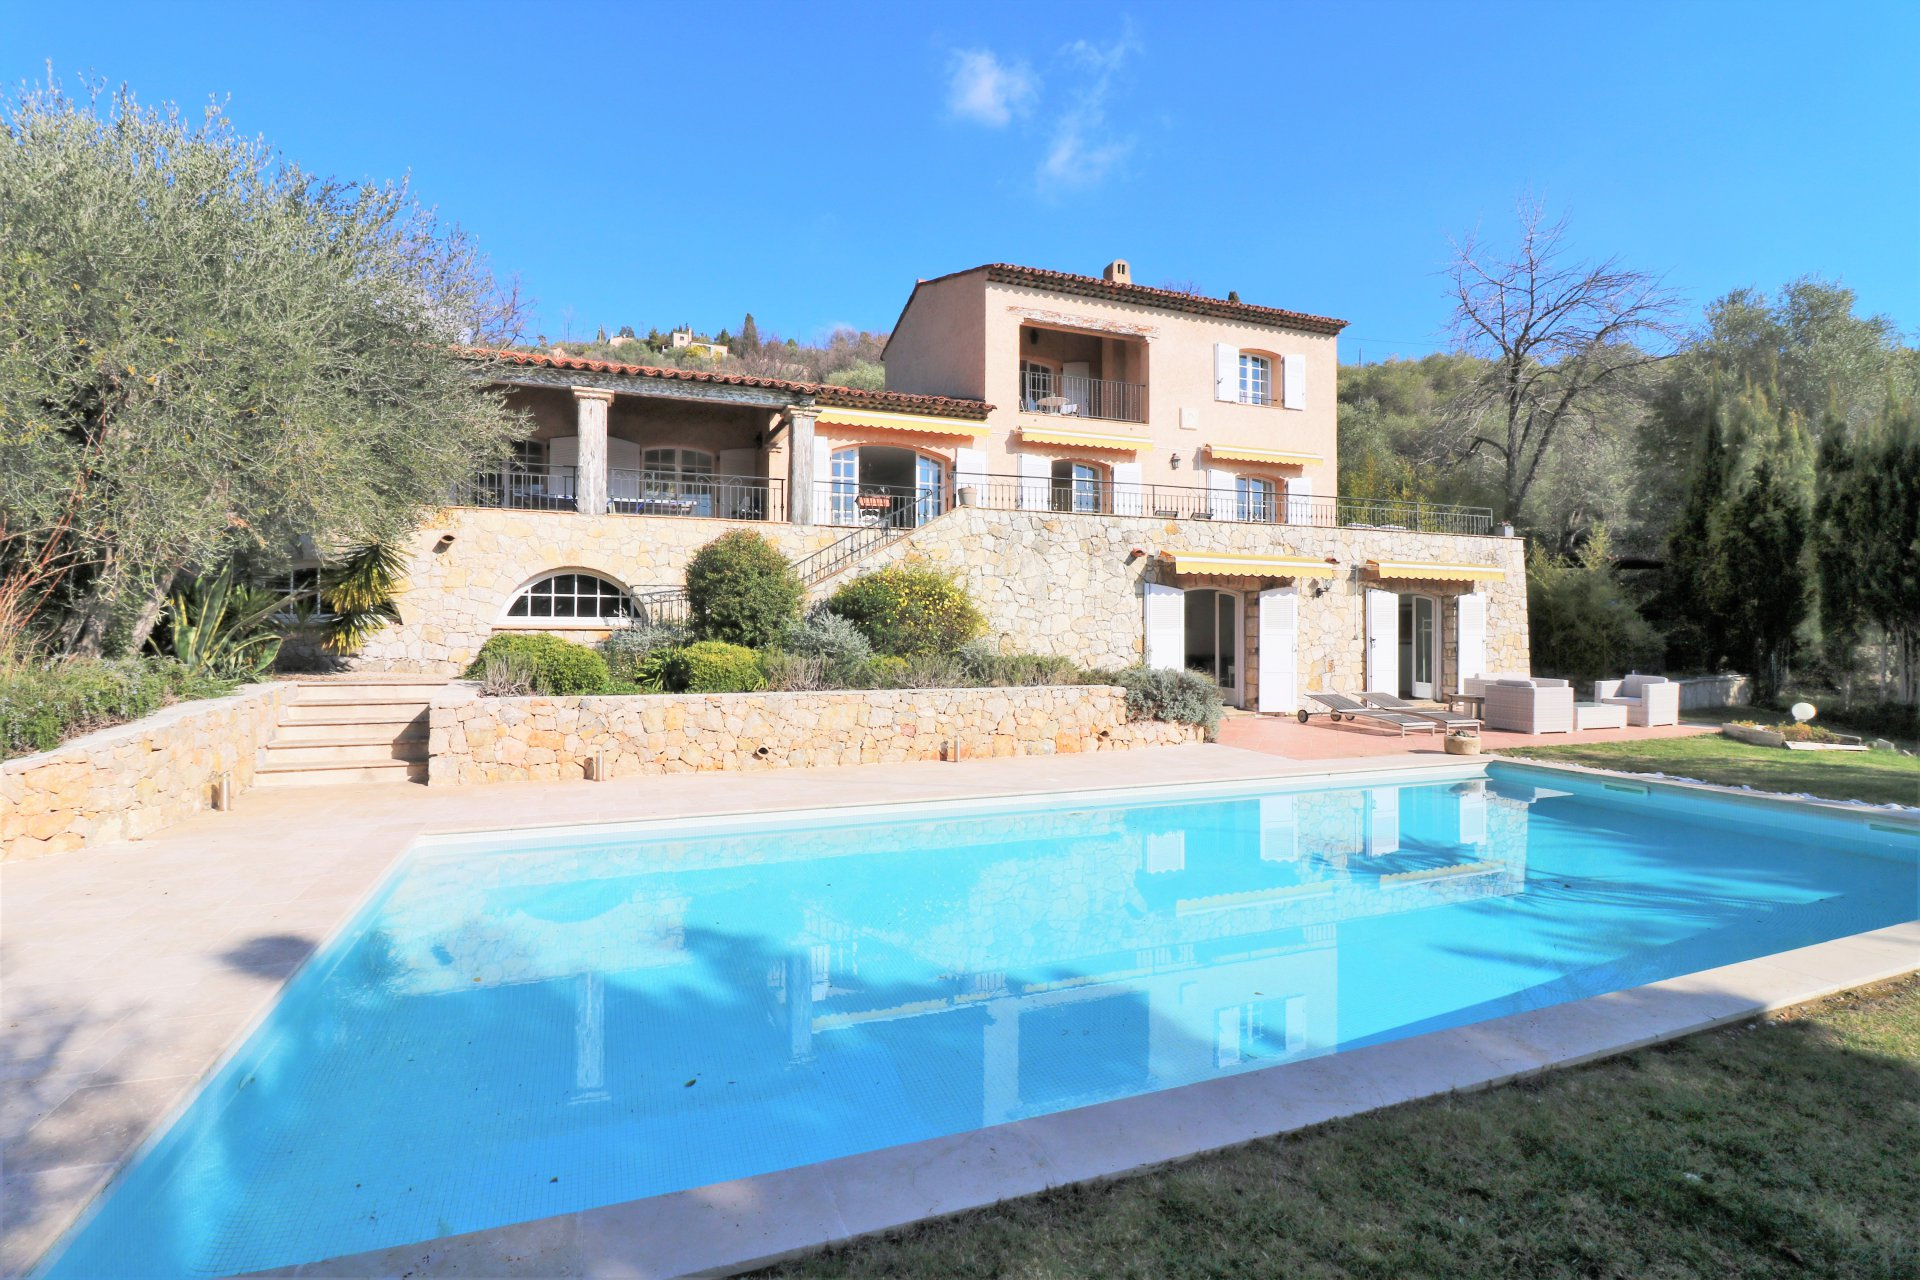 Traditional Villa, Quiet setting with beautifully landscaped gardens